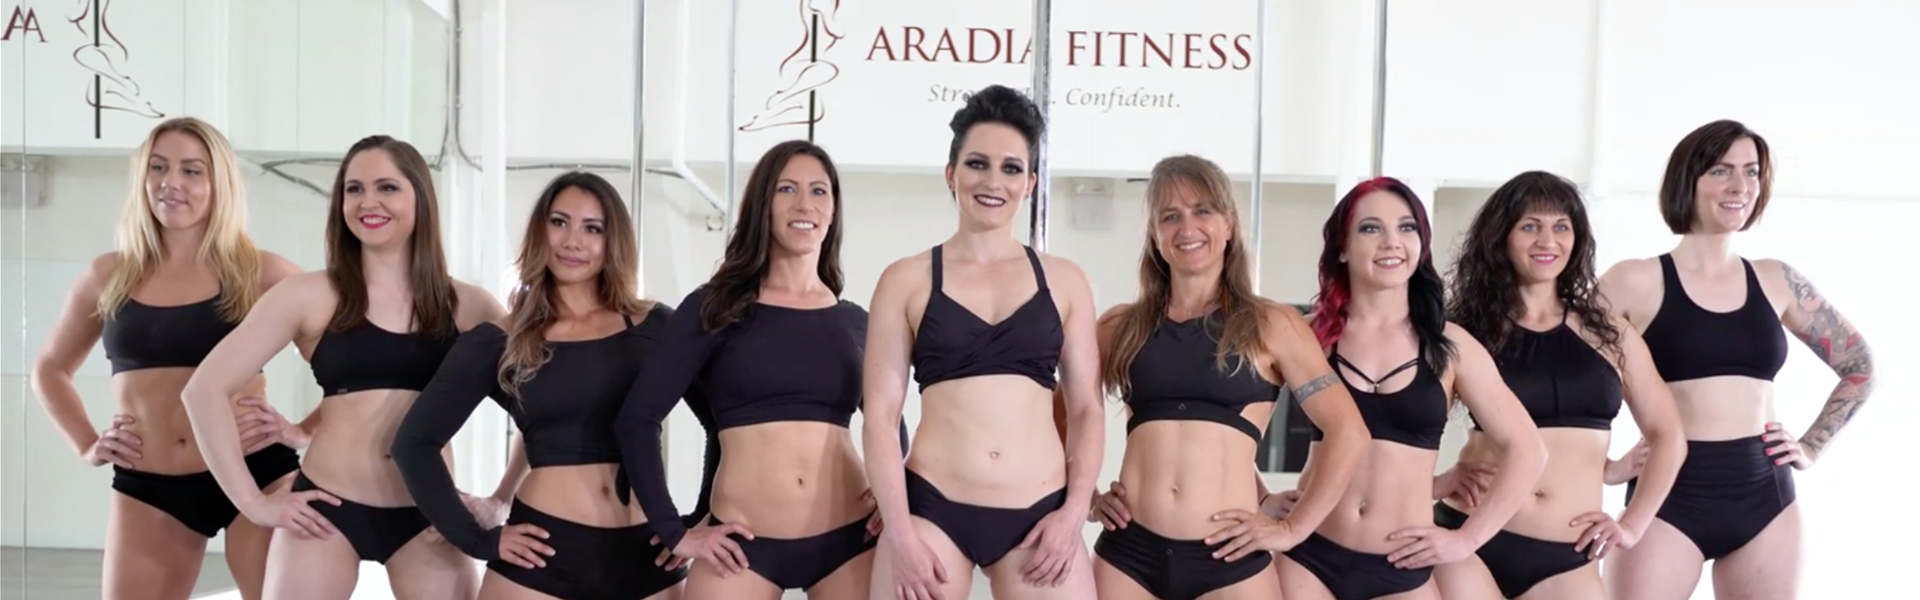 Aradia Fitness Calgary Instructors and Studio